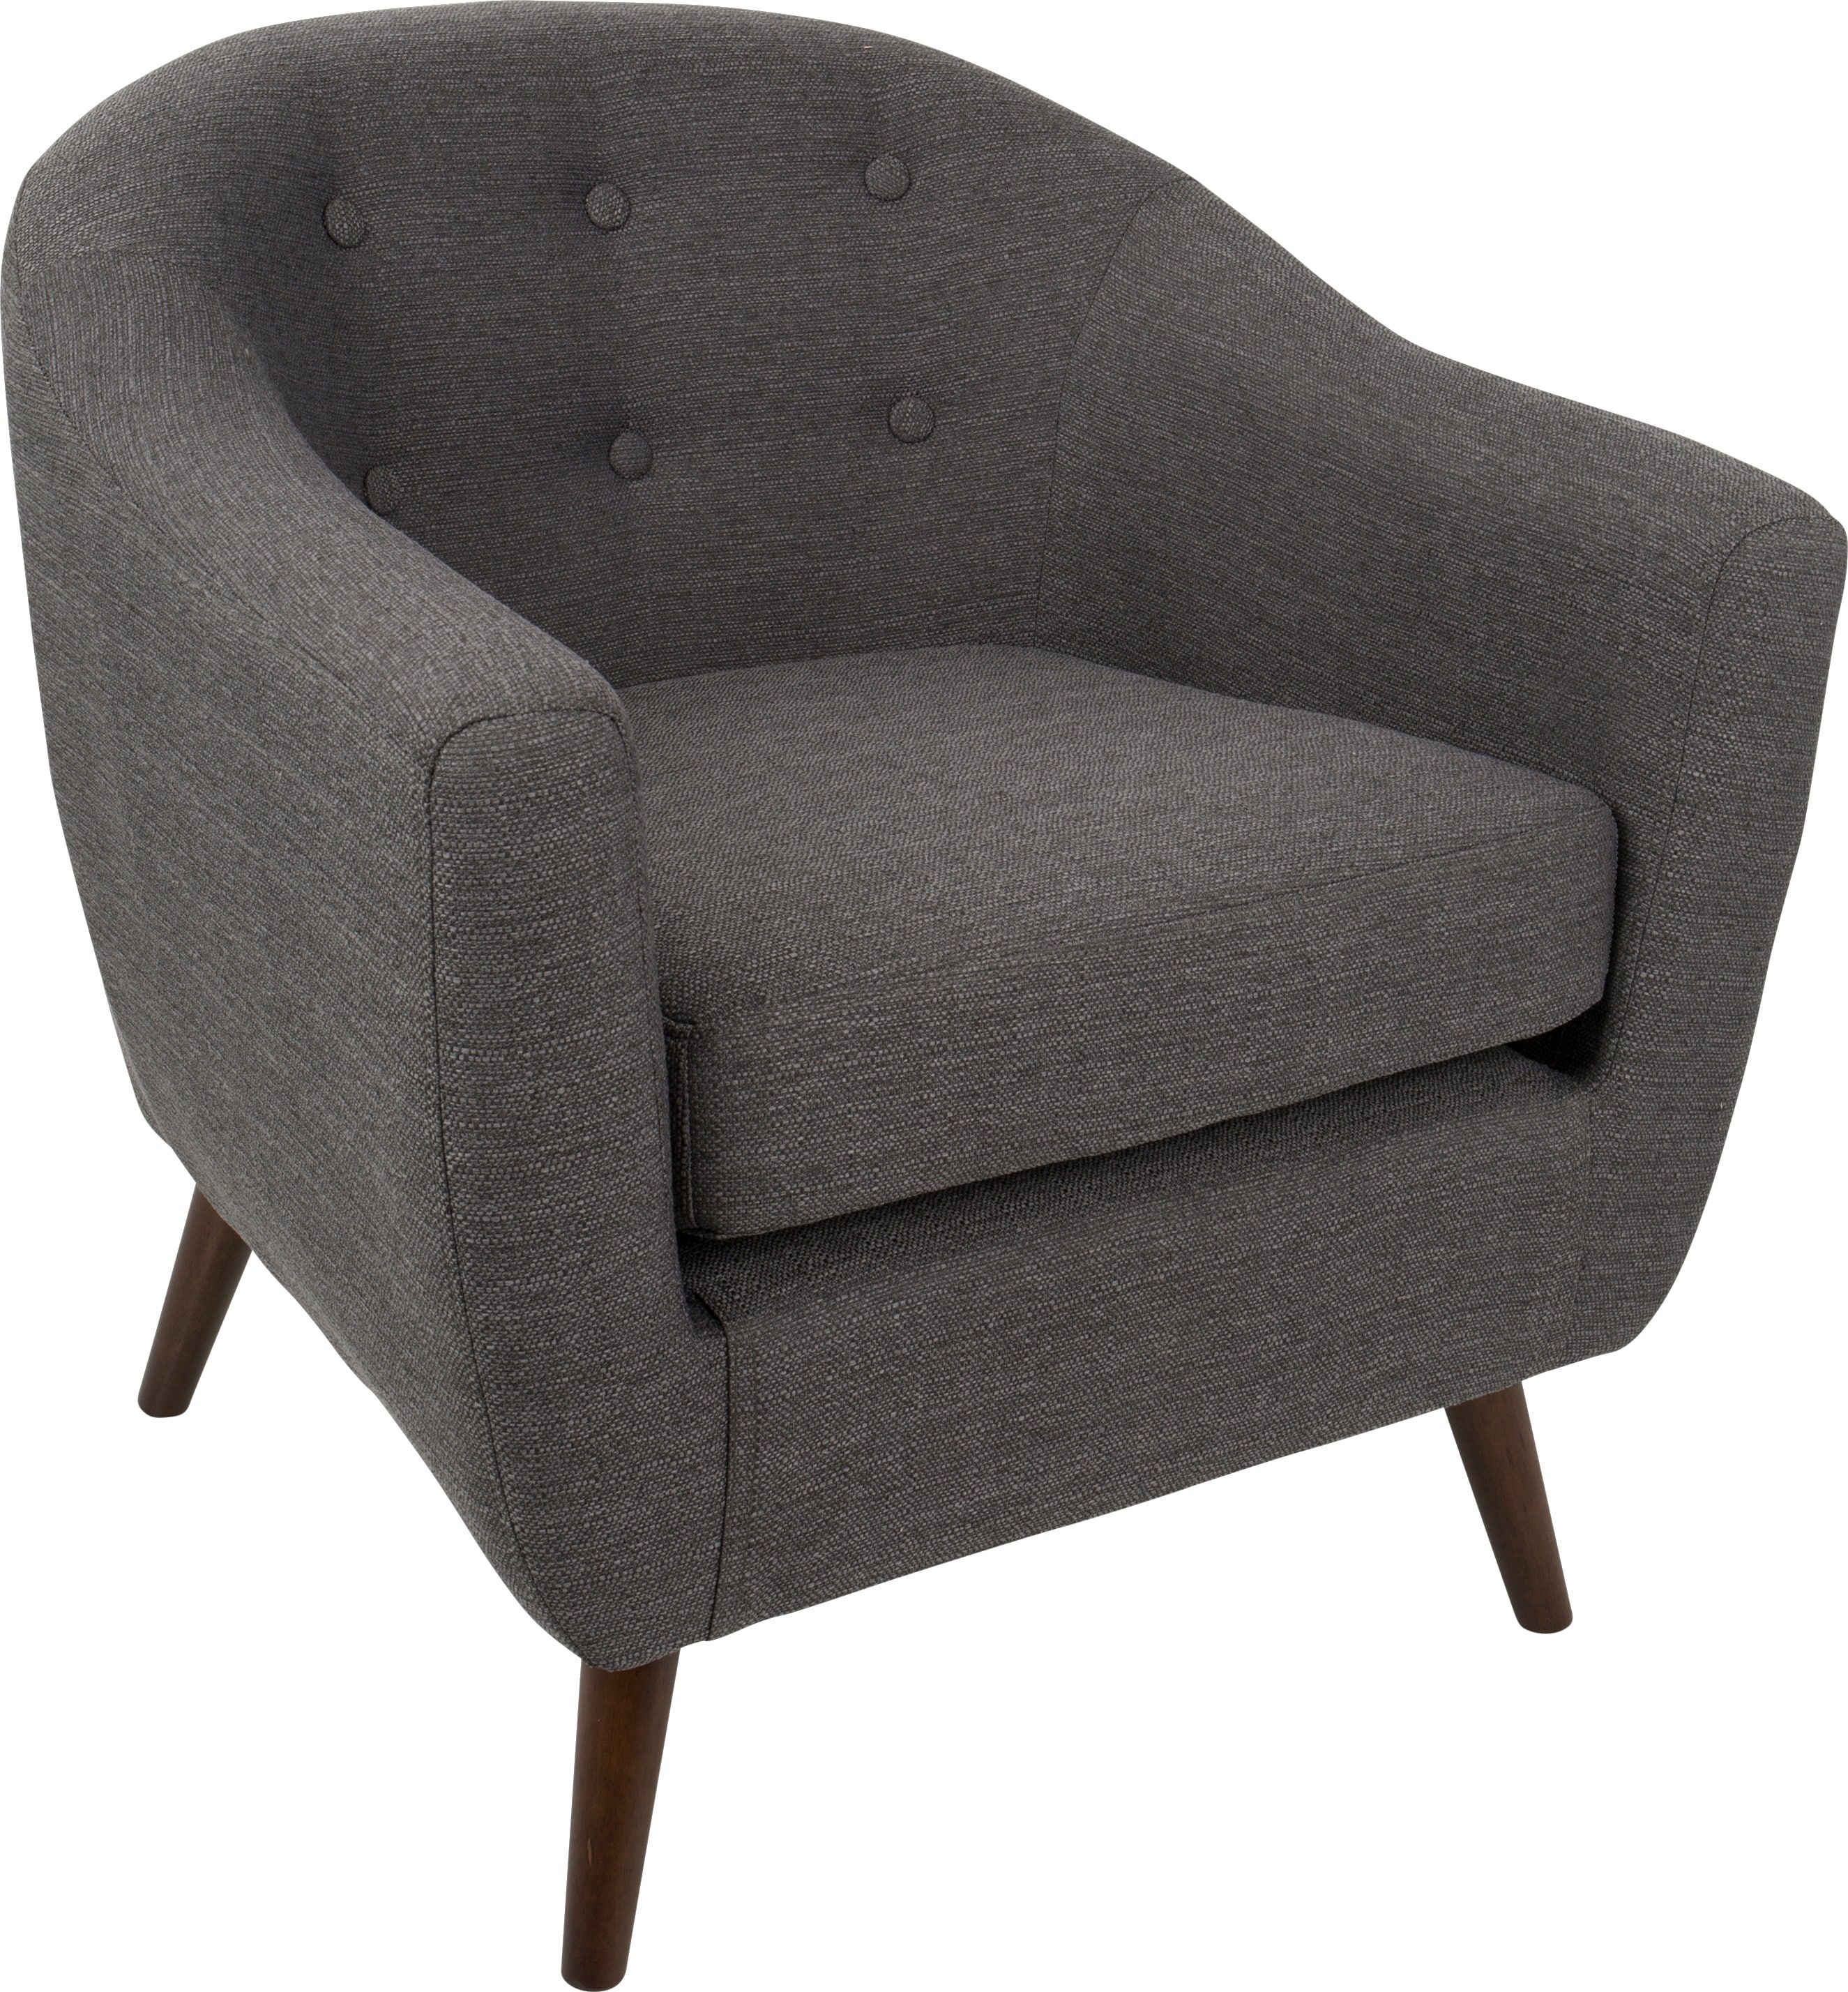 Rozelle Gray Accent Chair Upholstered Accent Chairs Grey Accent